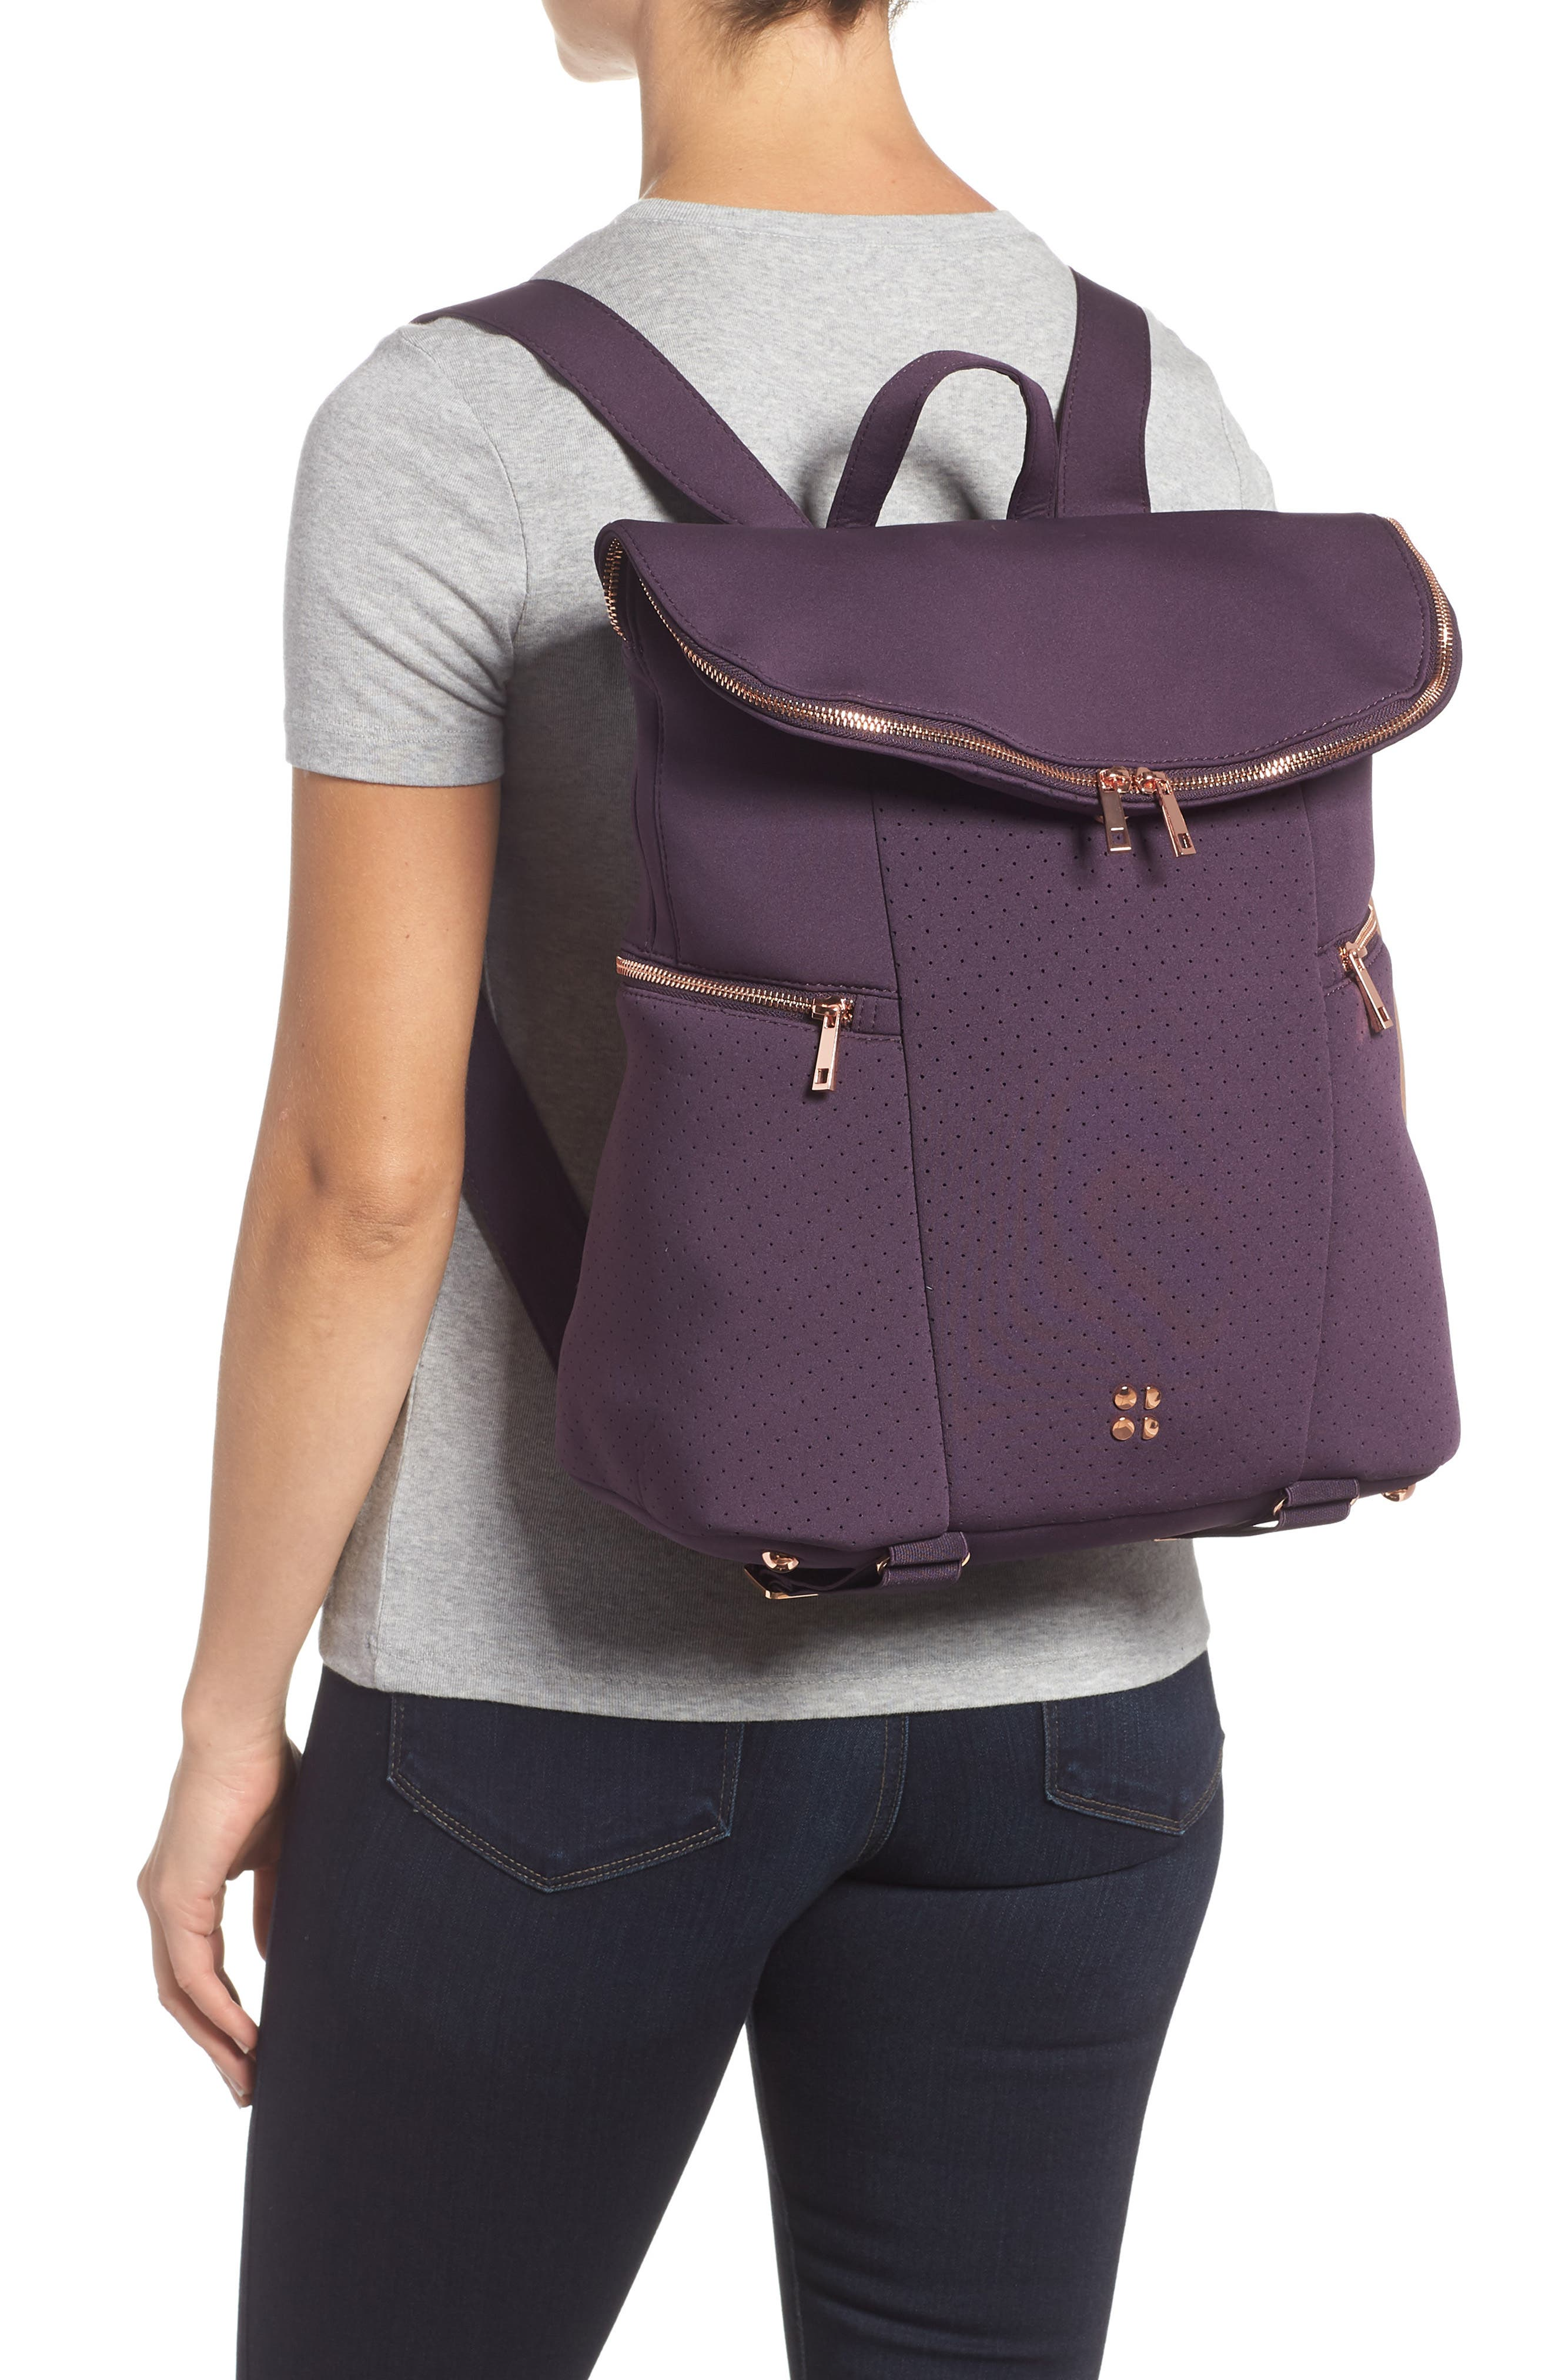 All Sport Backpack,                             Alternate thumbnail 2, color,                             AUBERGINE